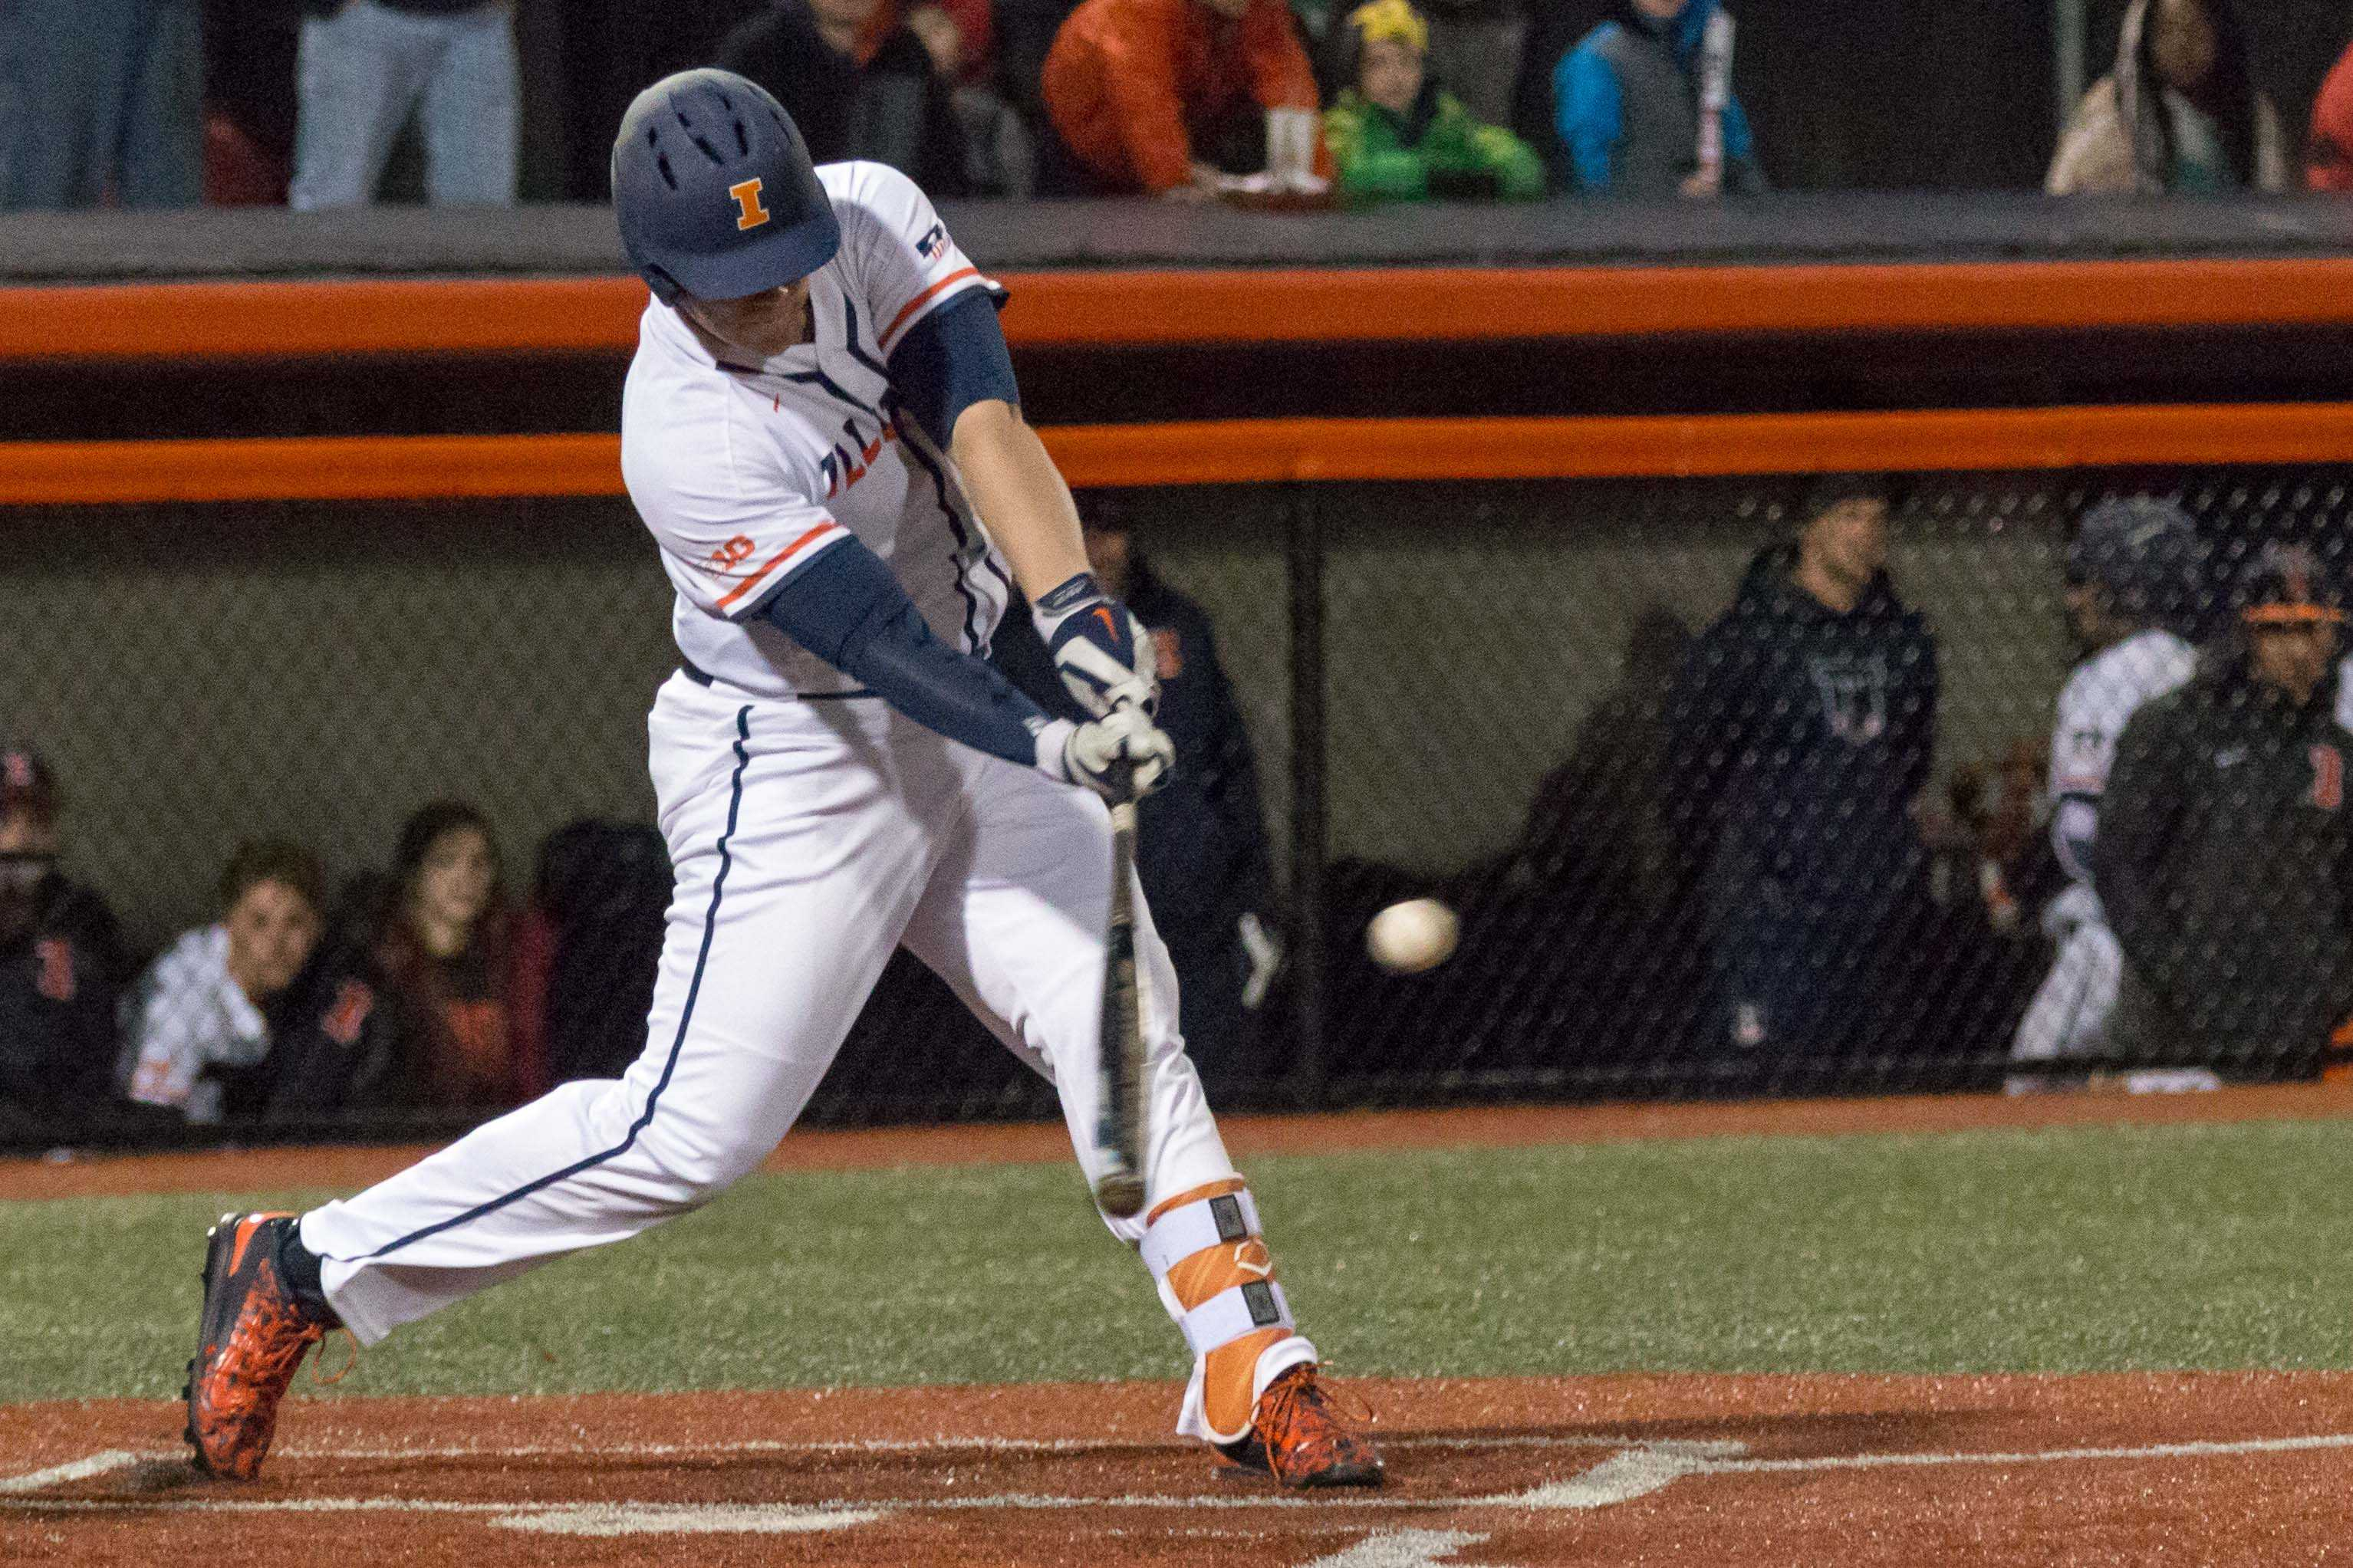 Illinois' Luke Shilling hits a double down the right field line scoring Pat McInerney in the game against Eastern Illinois at Illini Field on Tuesday, April 5. The Illini won 9-7.